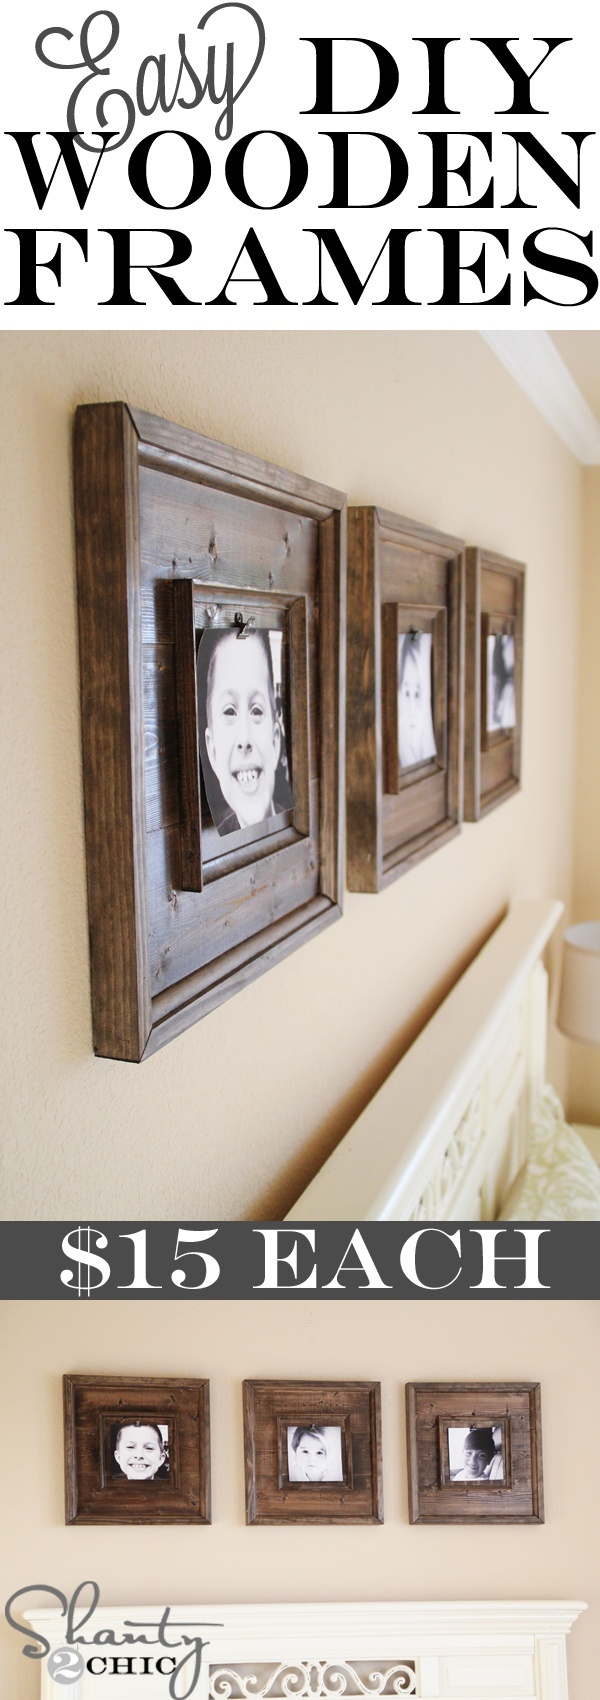 289 best frames gallery walls shadow boxes images on pinterest cheap and easy diy wooden frameslove this style hey hubby jeuxipadfo Choice Image